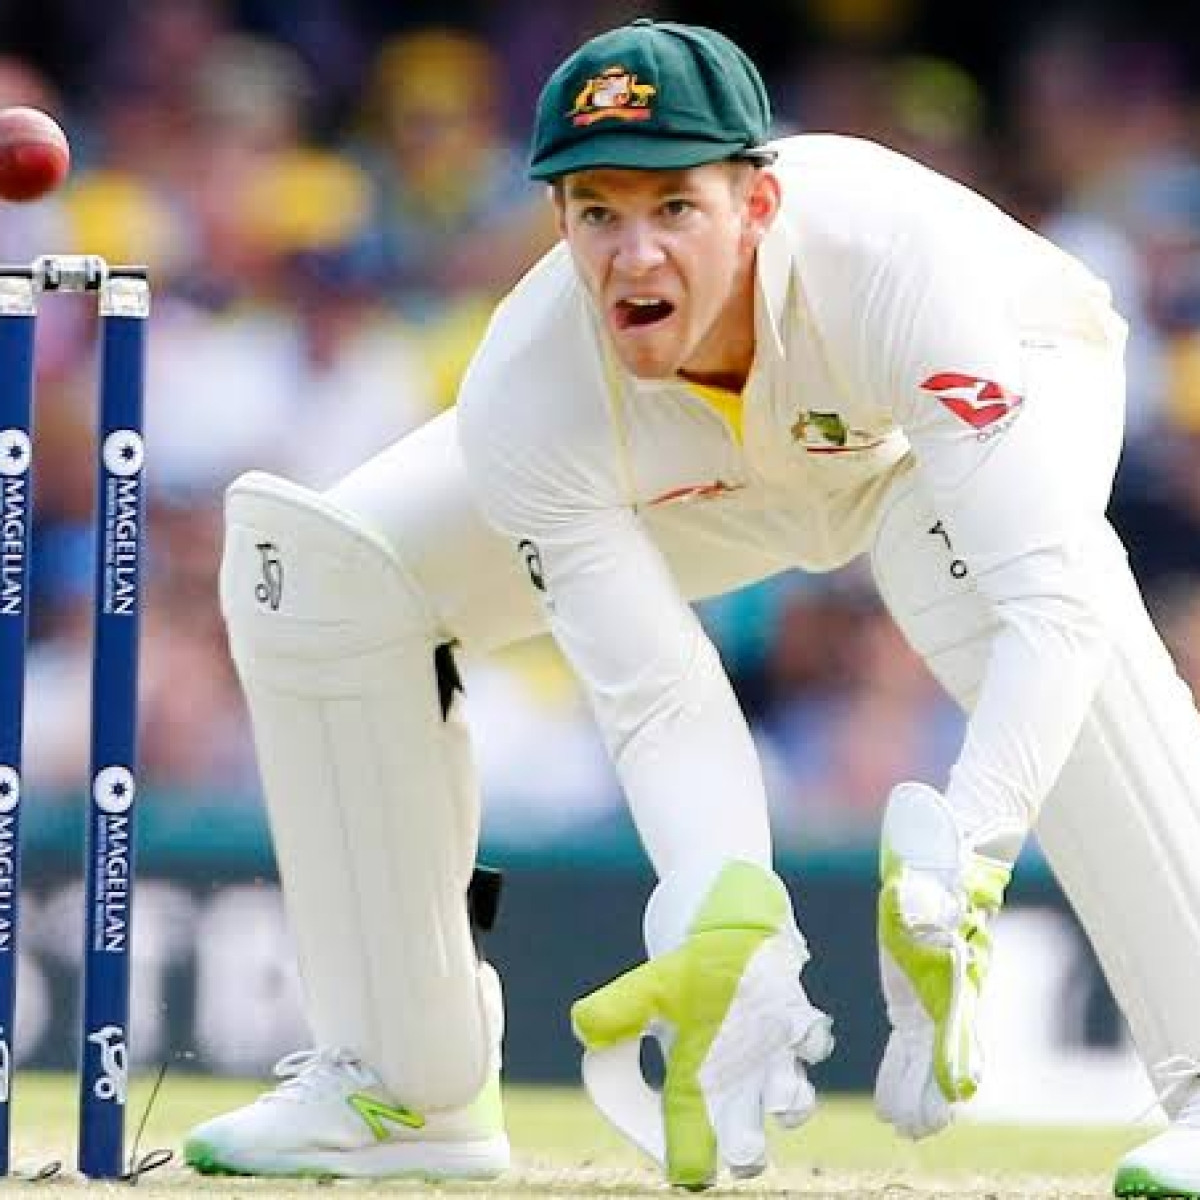 Australia skipper Tim Paine accepts defeat, says his side was outplayed by 'disciplined Indian team'